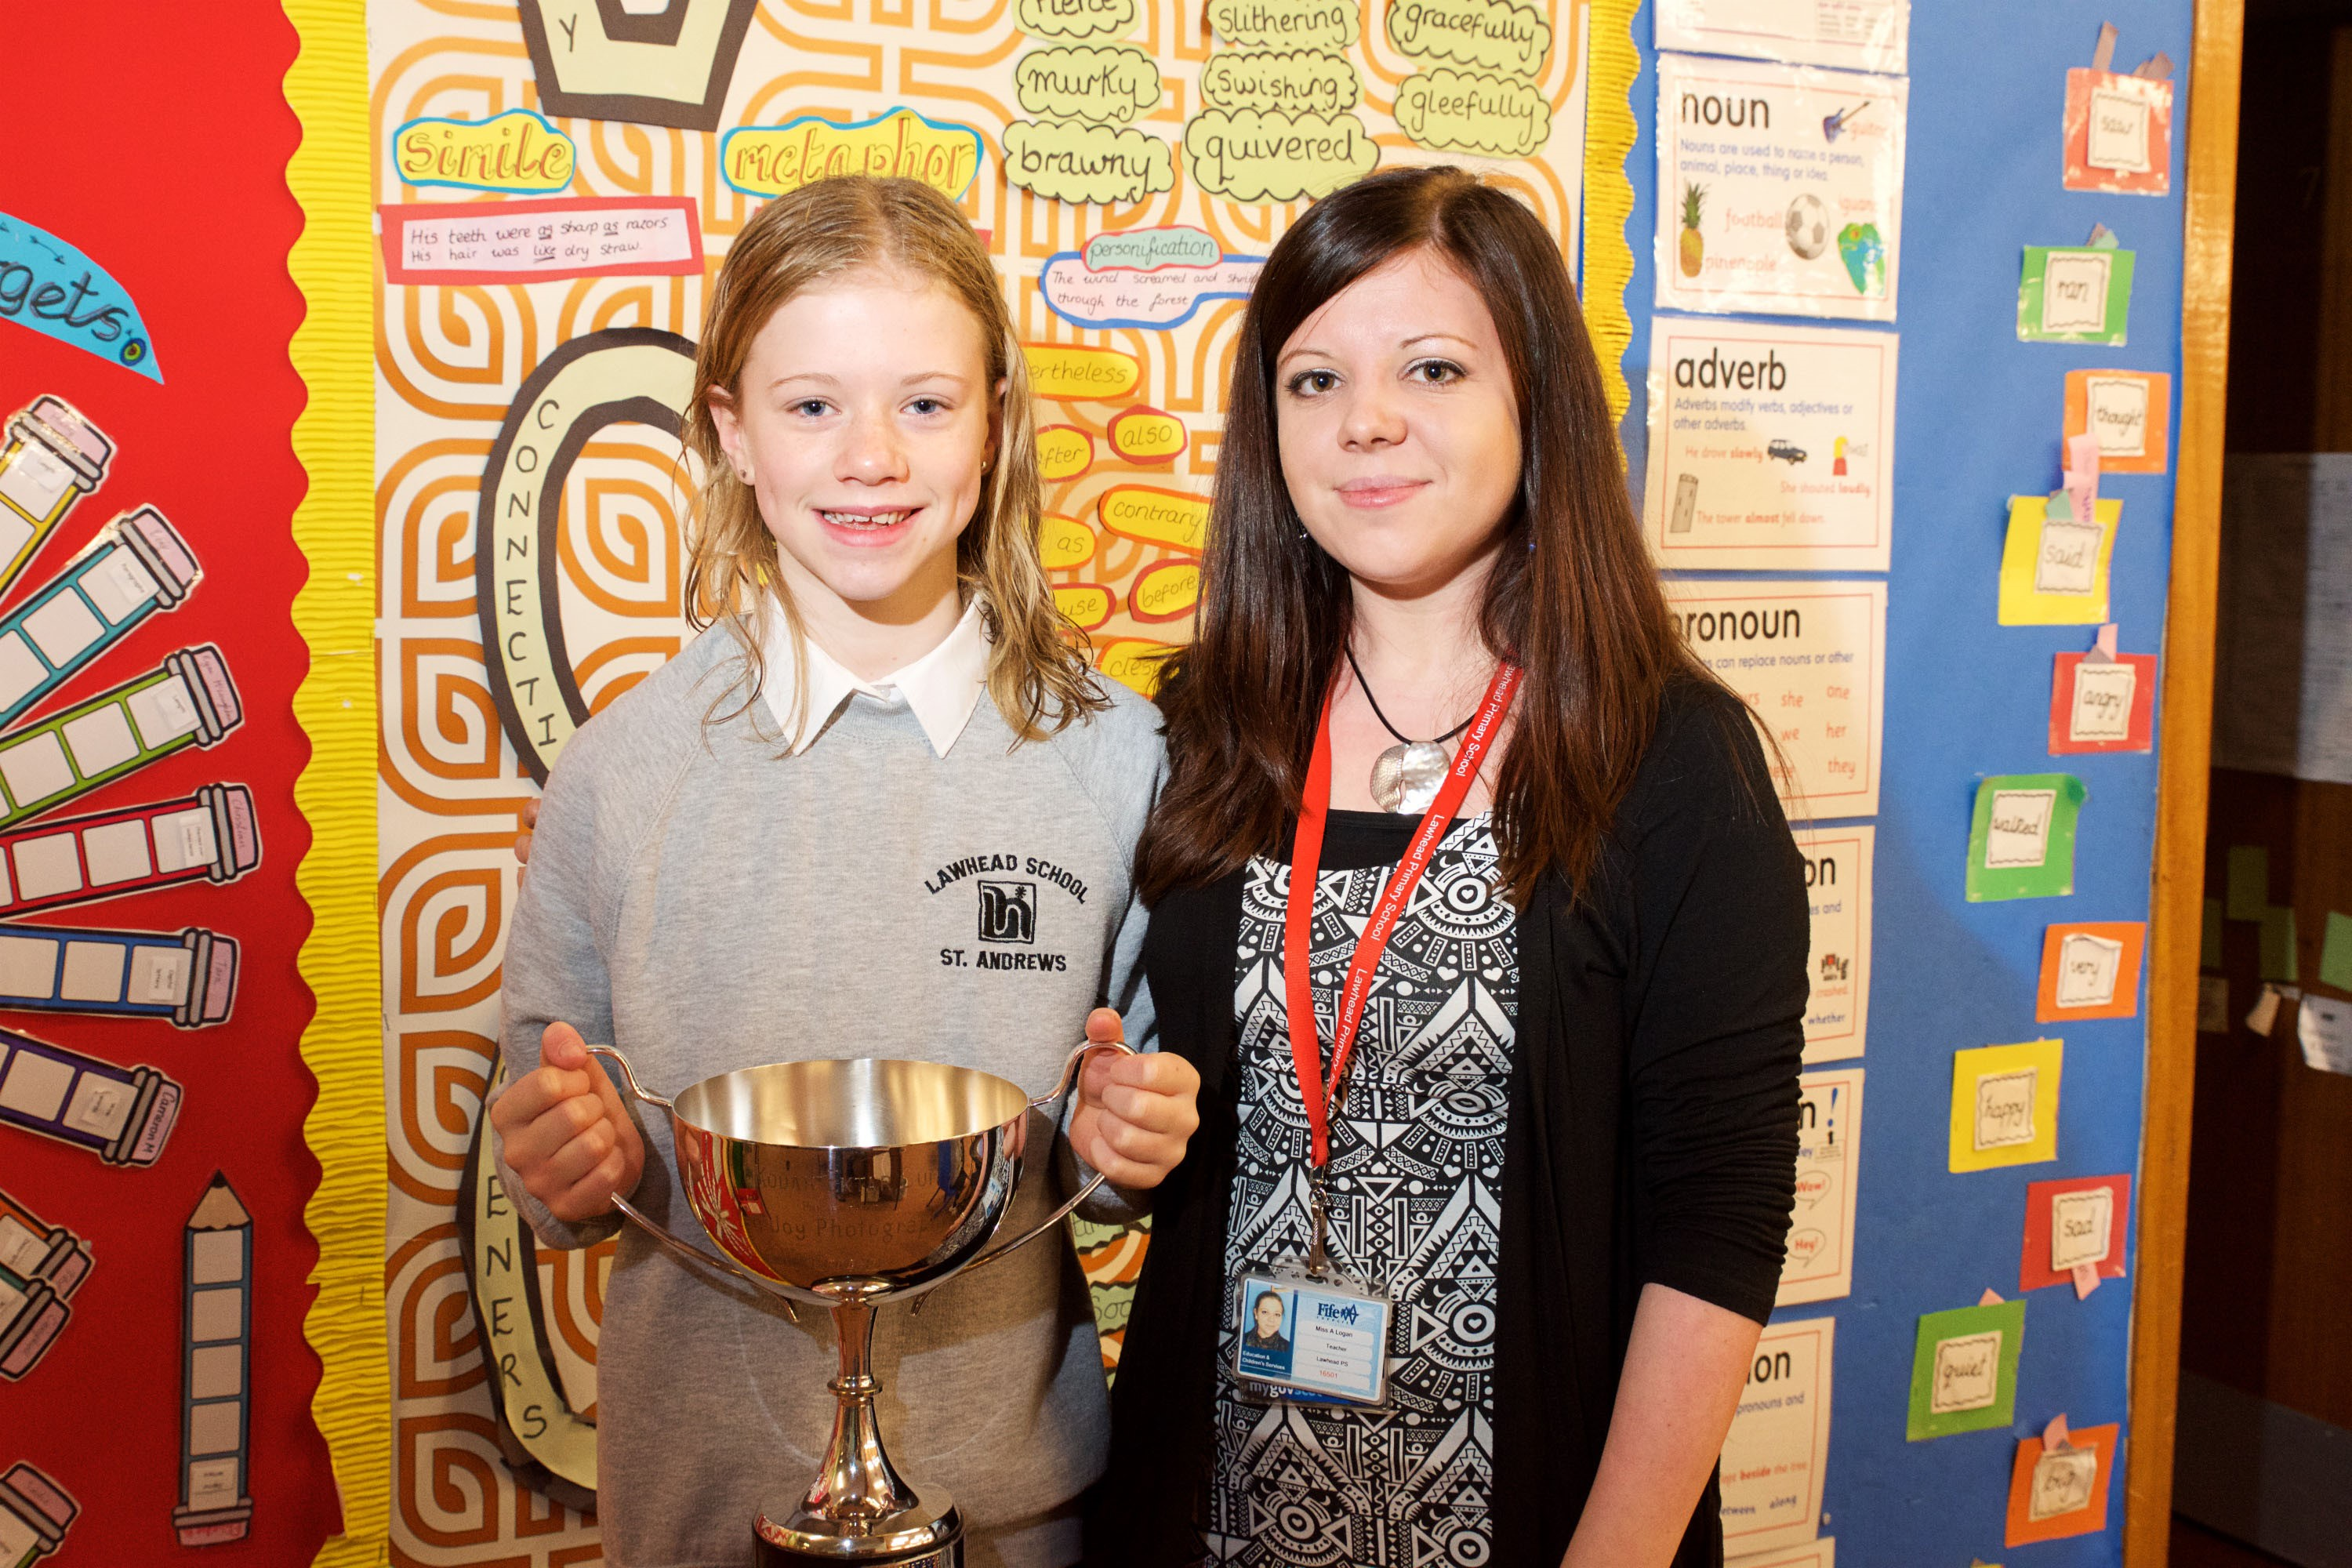 Freya McLelland, P6, Lawhead Primary School, with her teacher Miss Logan. (Photo copyright-free and taken by Mathew Schwartz.)